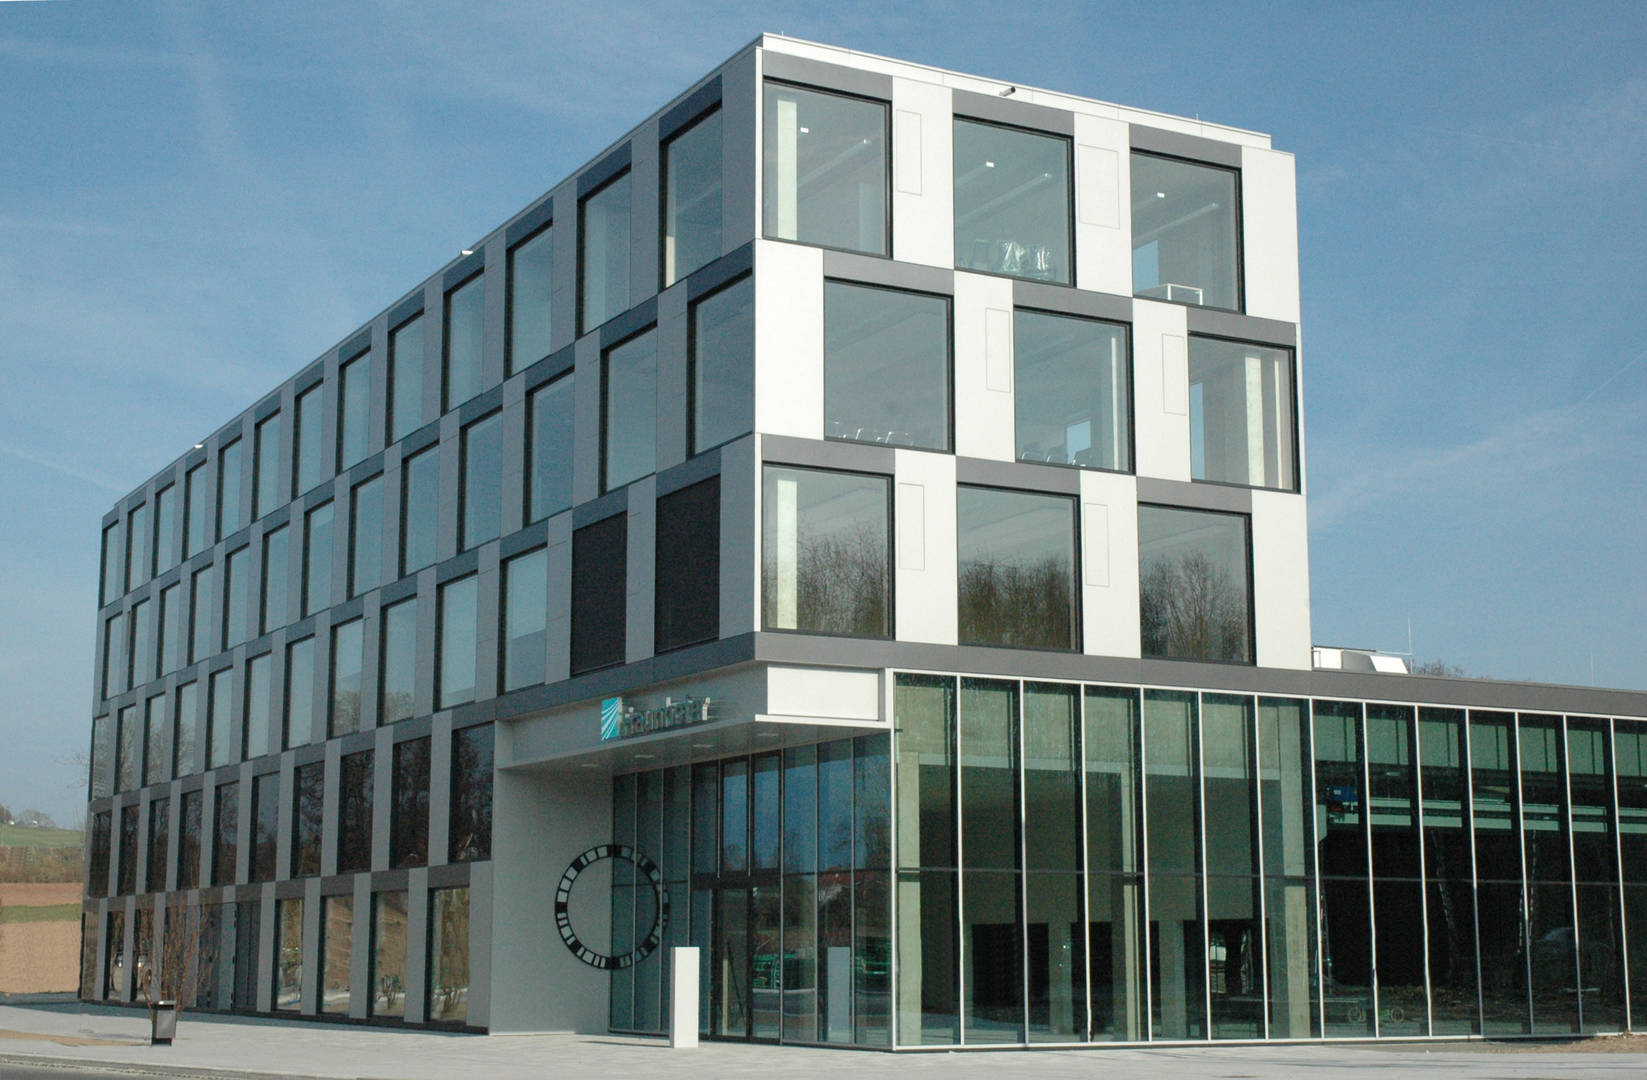 European reman research has new home in Germany